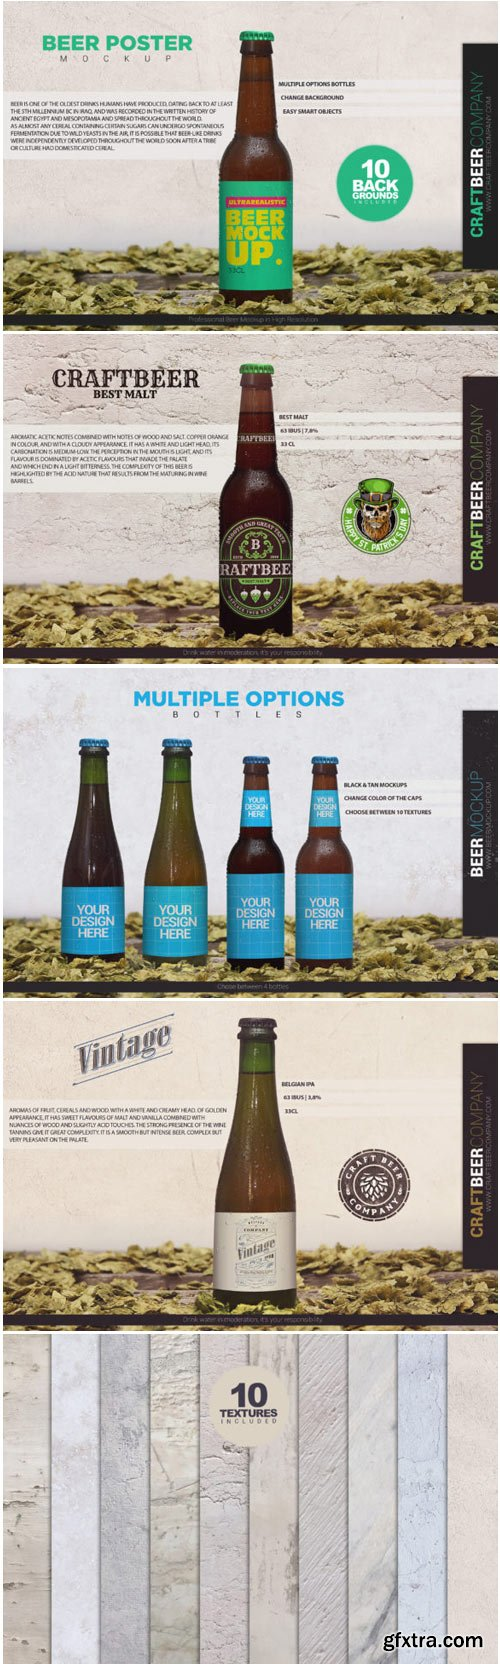 Beer Poster Template 1701522